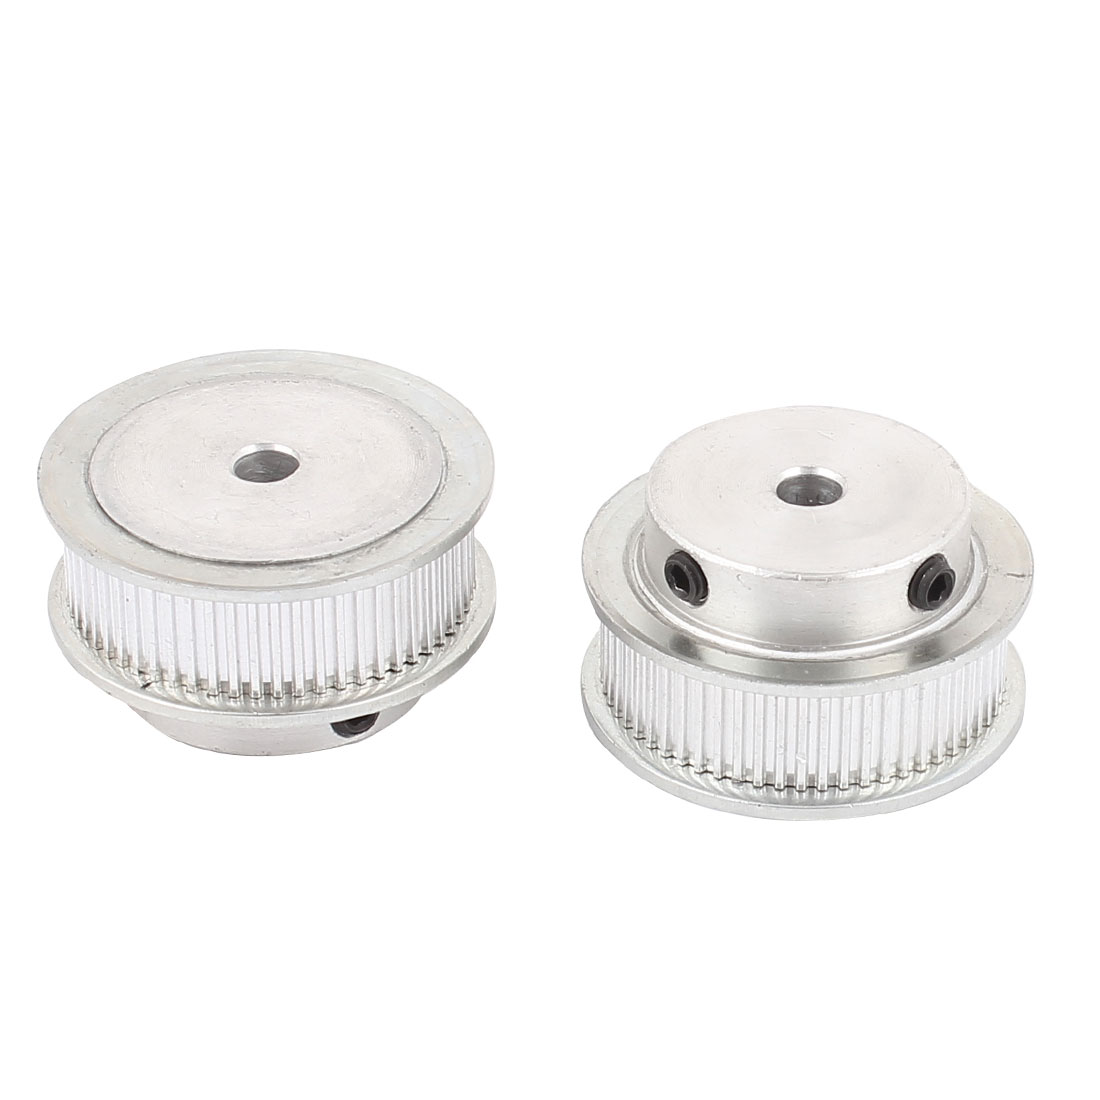 2 Pcs MXL60 11mm Belt Width 6mm Bore 60 Teeth Synchronous Timing Pulley